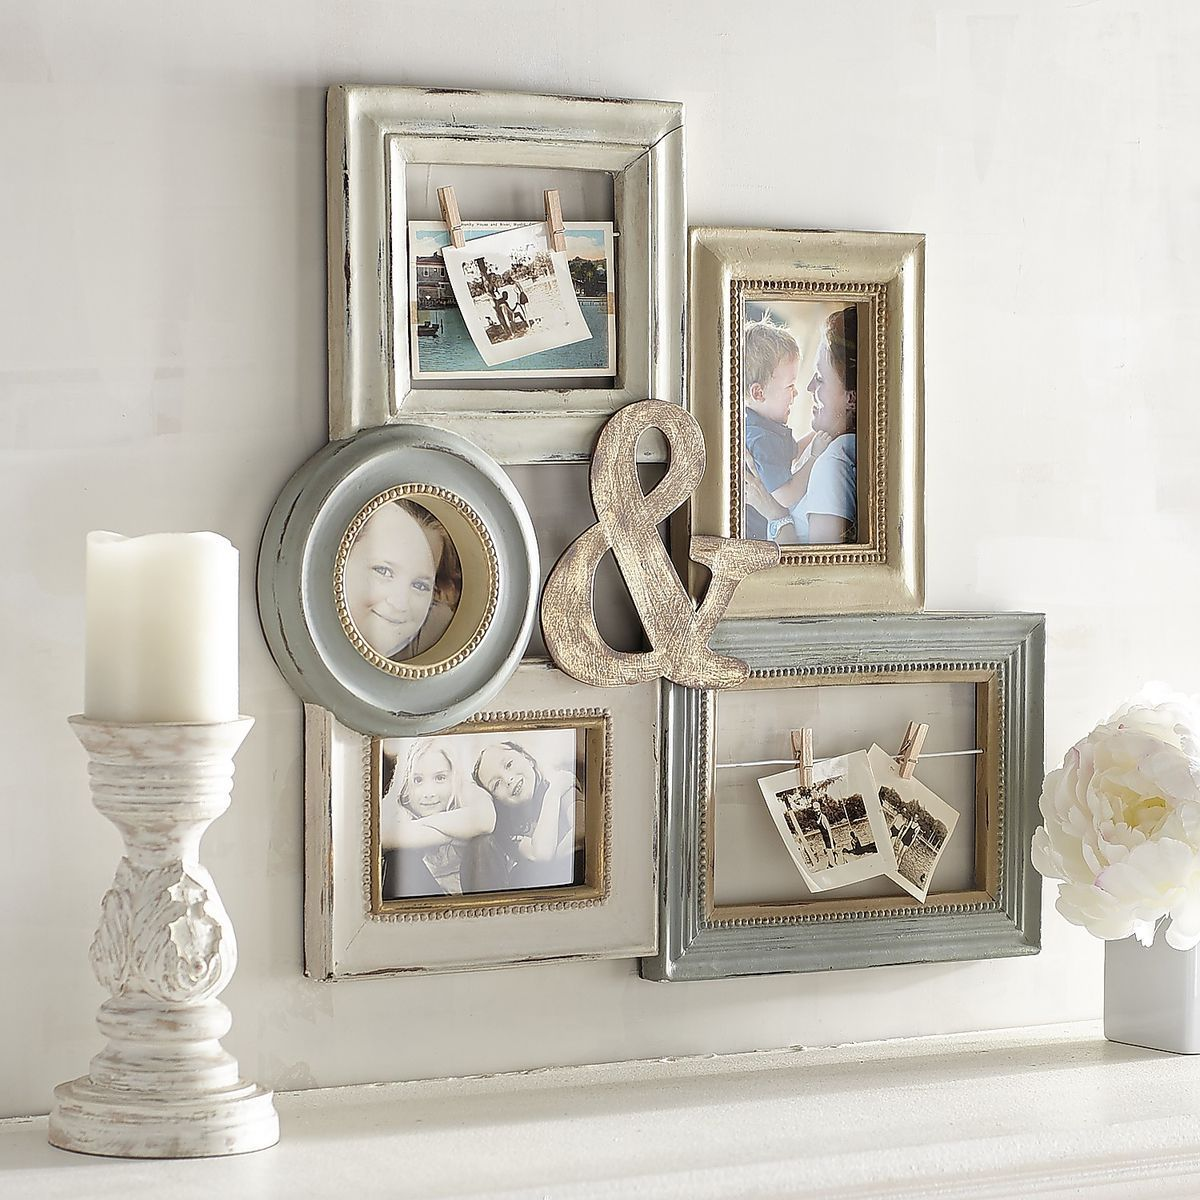 Ampersand Collage Wall Photo Frame   Pier 1 Imports   NEXT CHAPTER ...